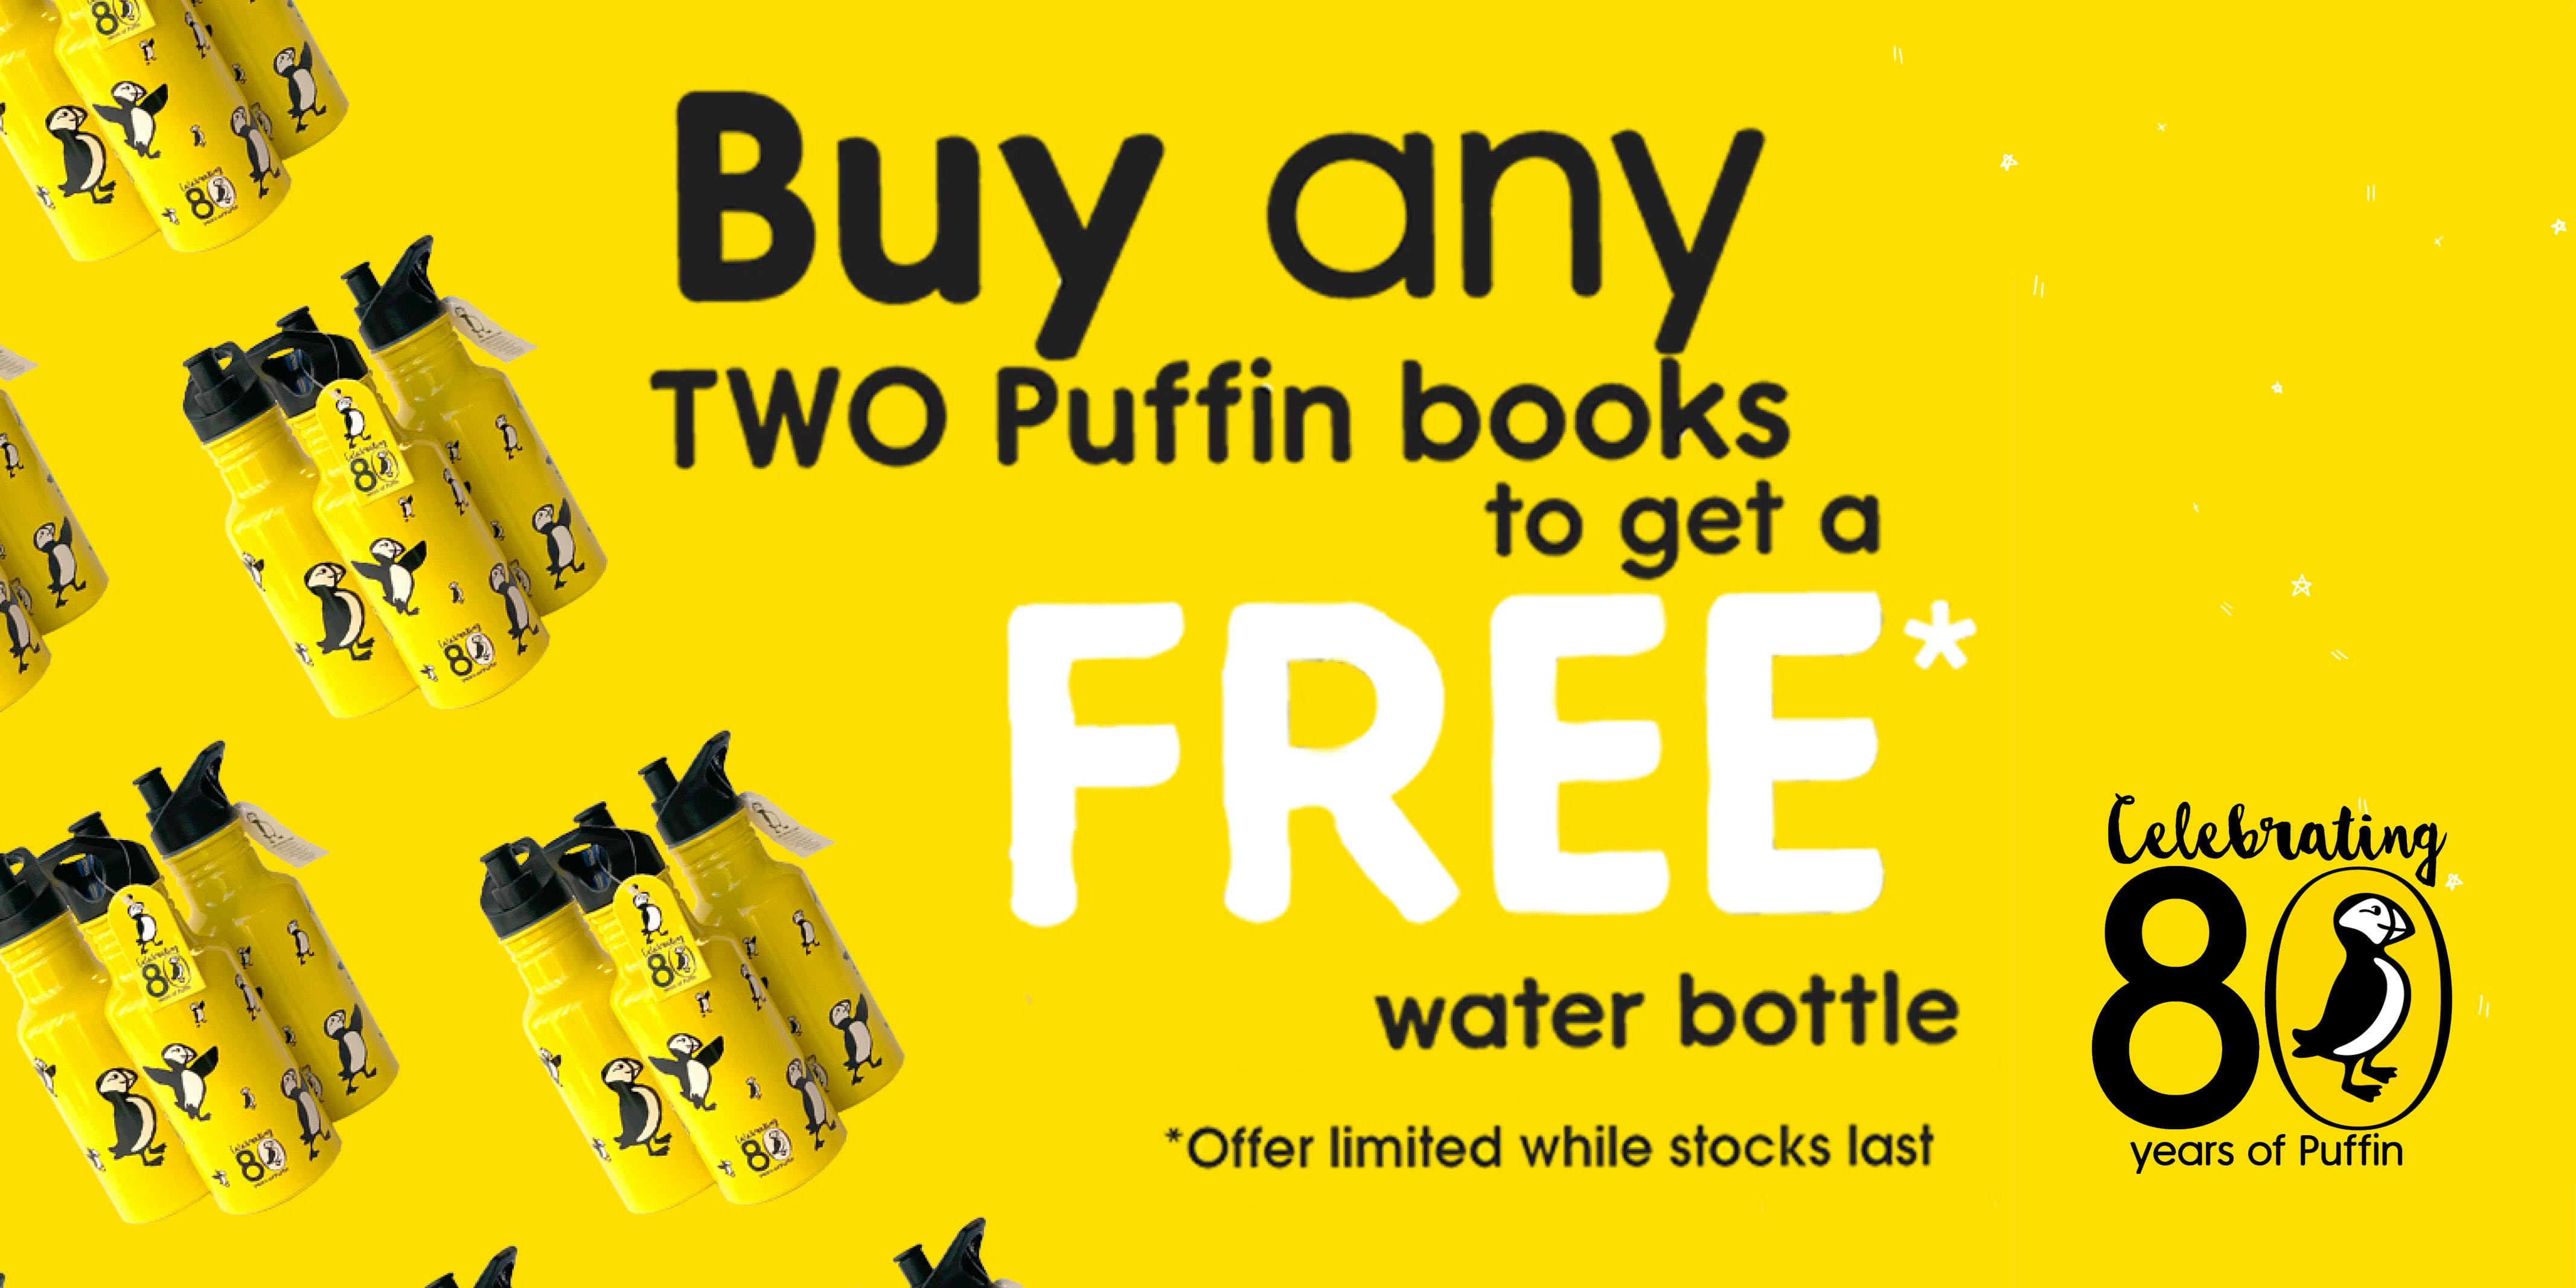 Puffin water bottles are in stores now!